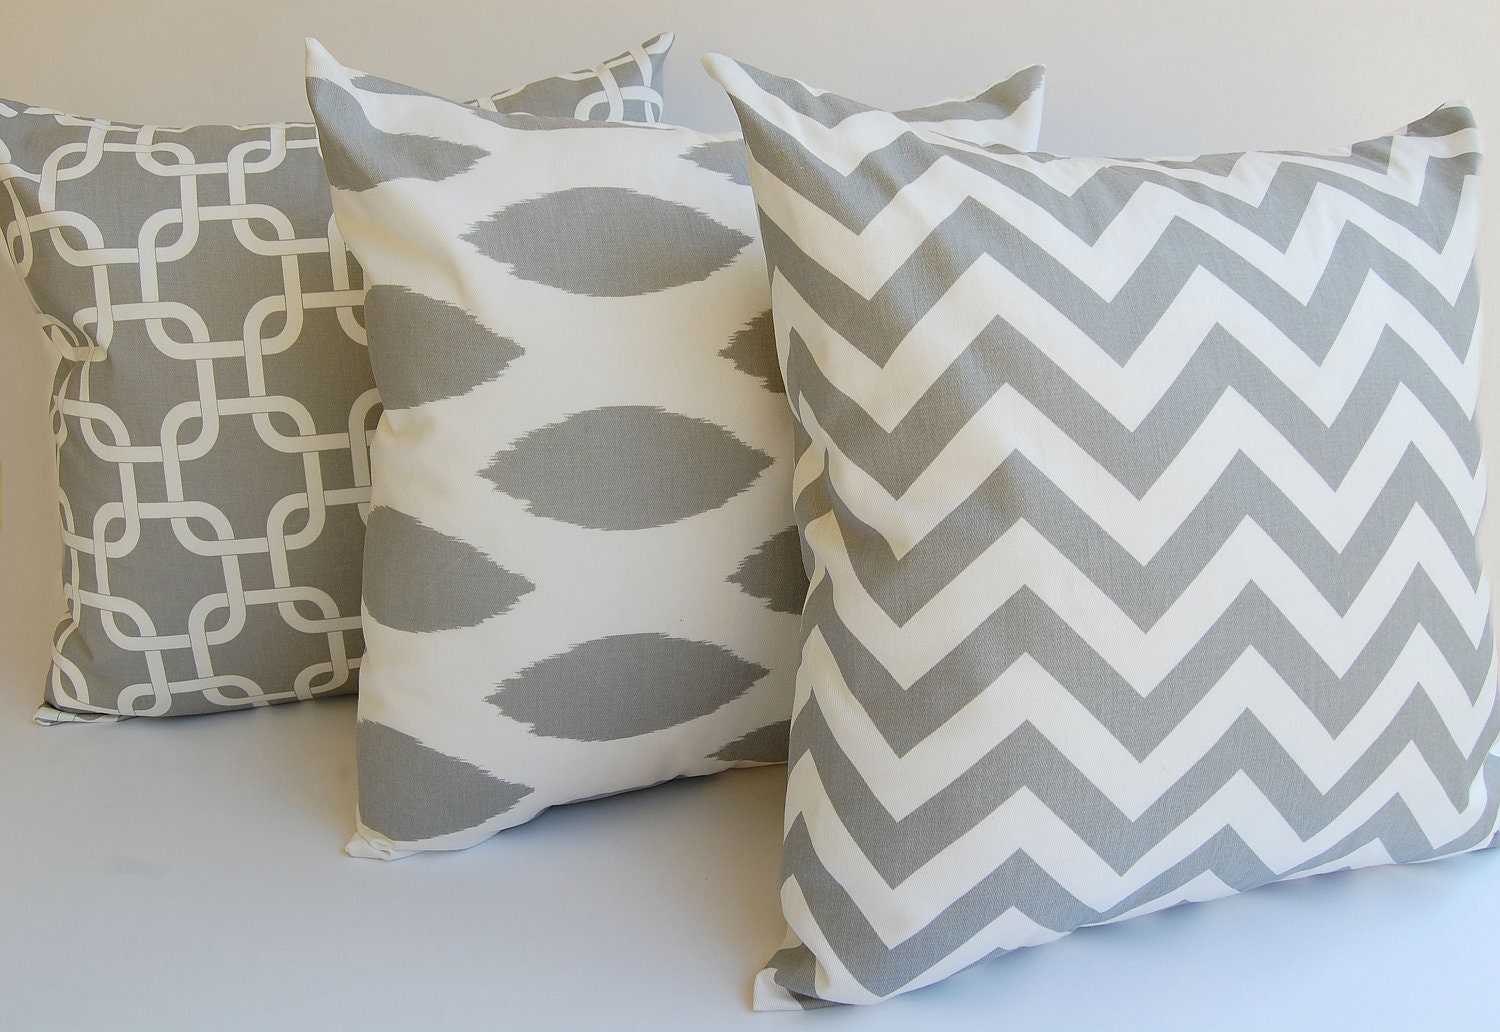 Decorative Pillows Etsy : Gray Pillow Throw Pillows 18 x 18 Inches by ThePillowPeople